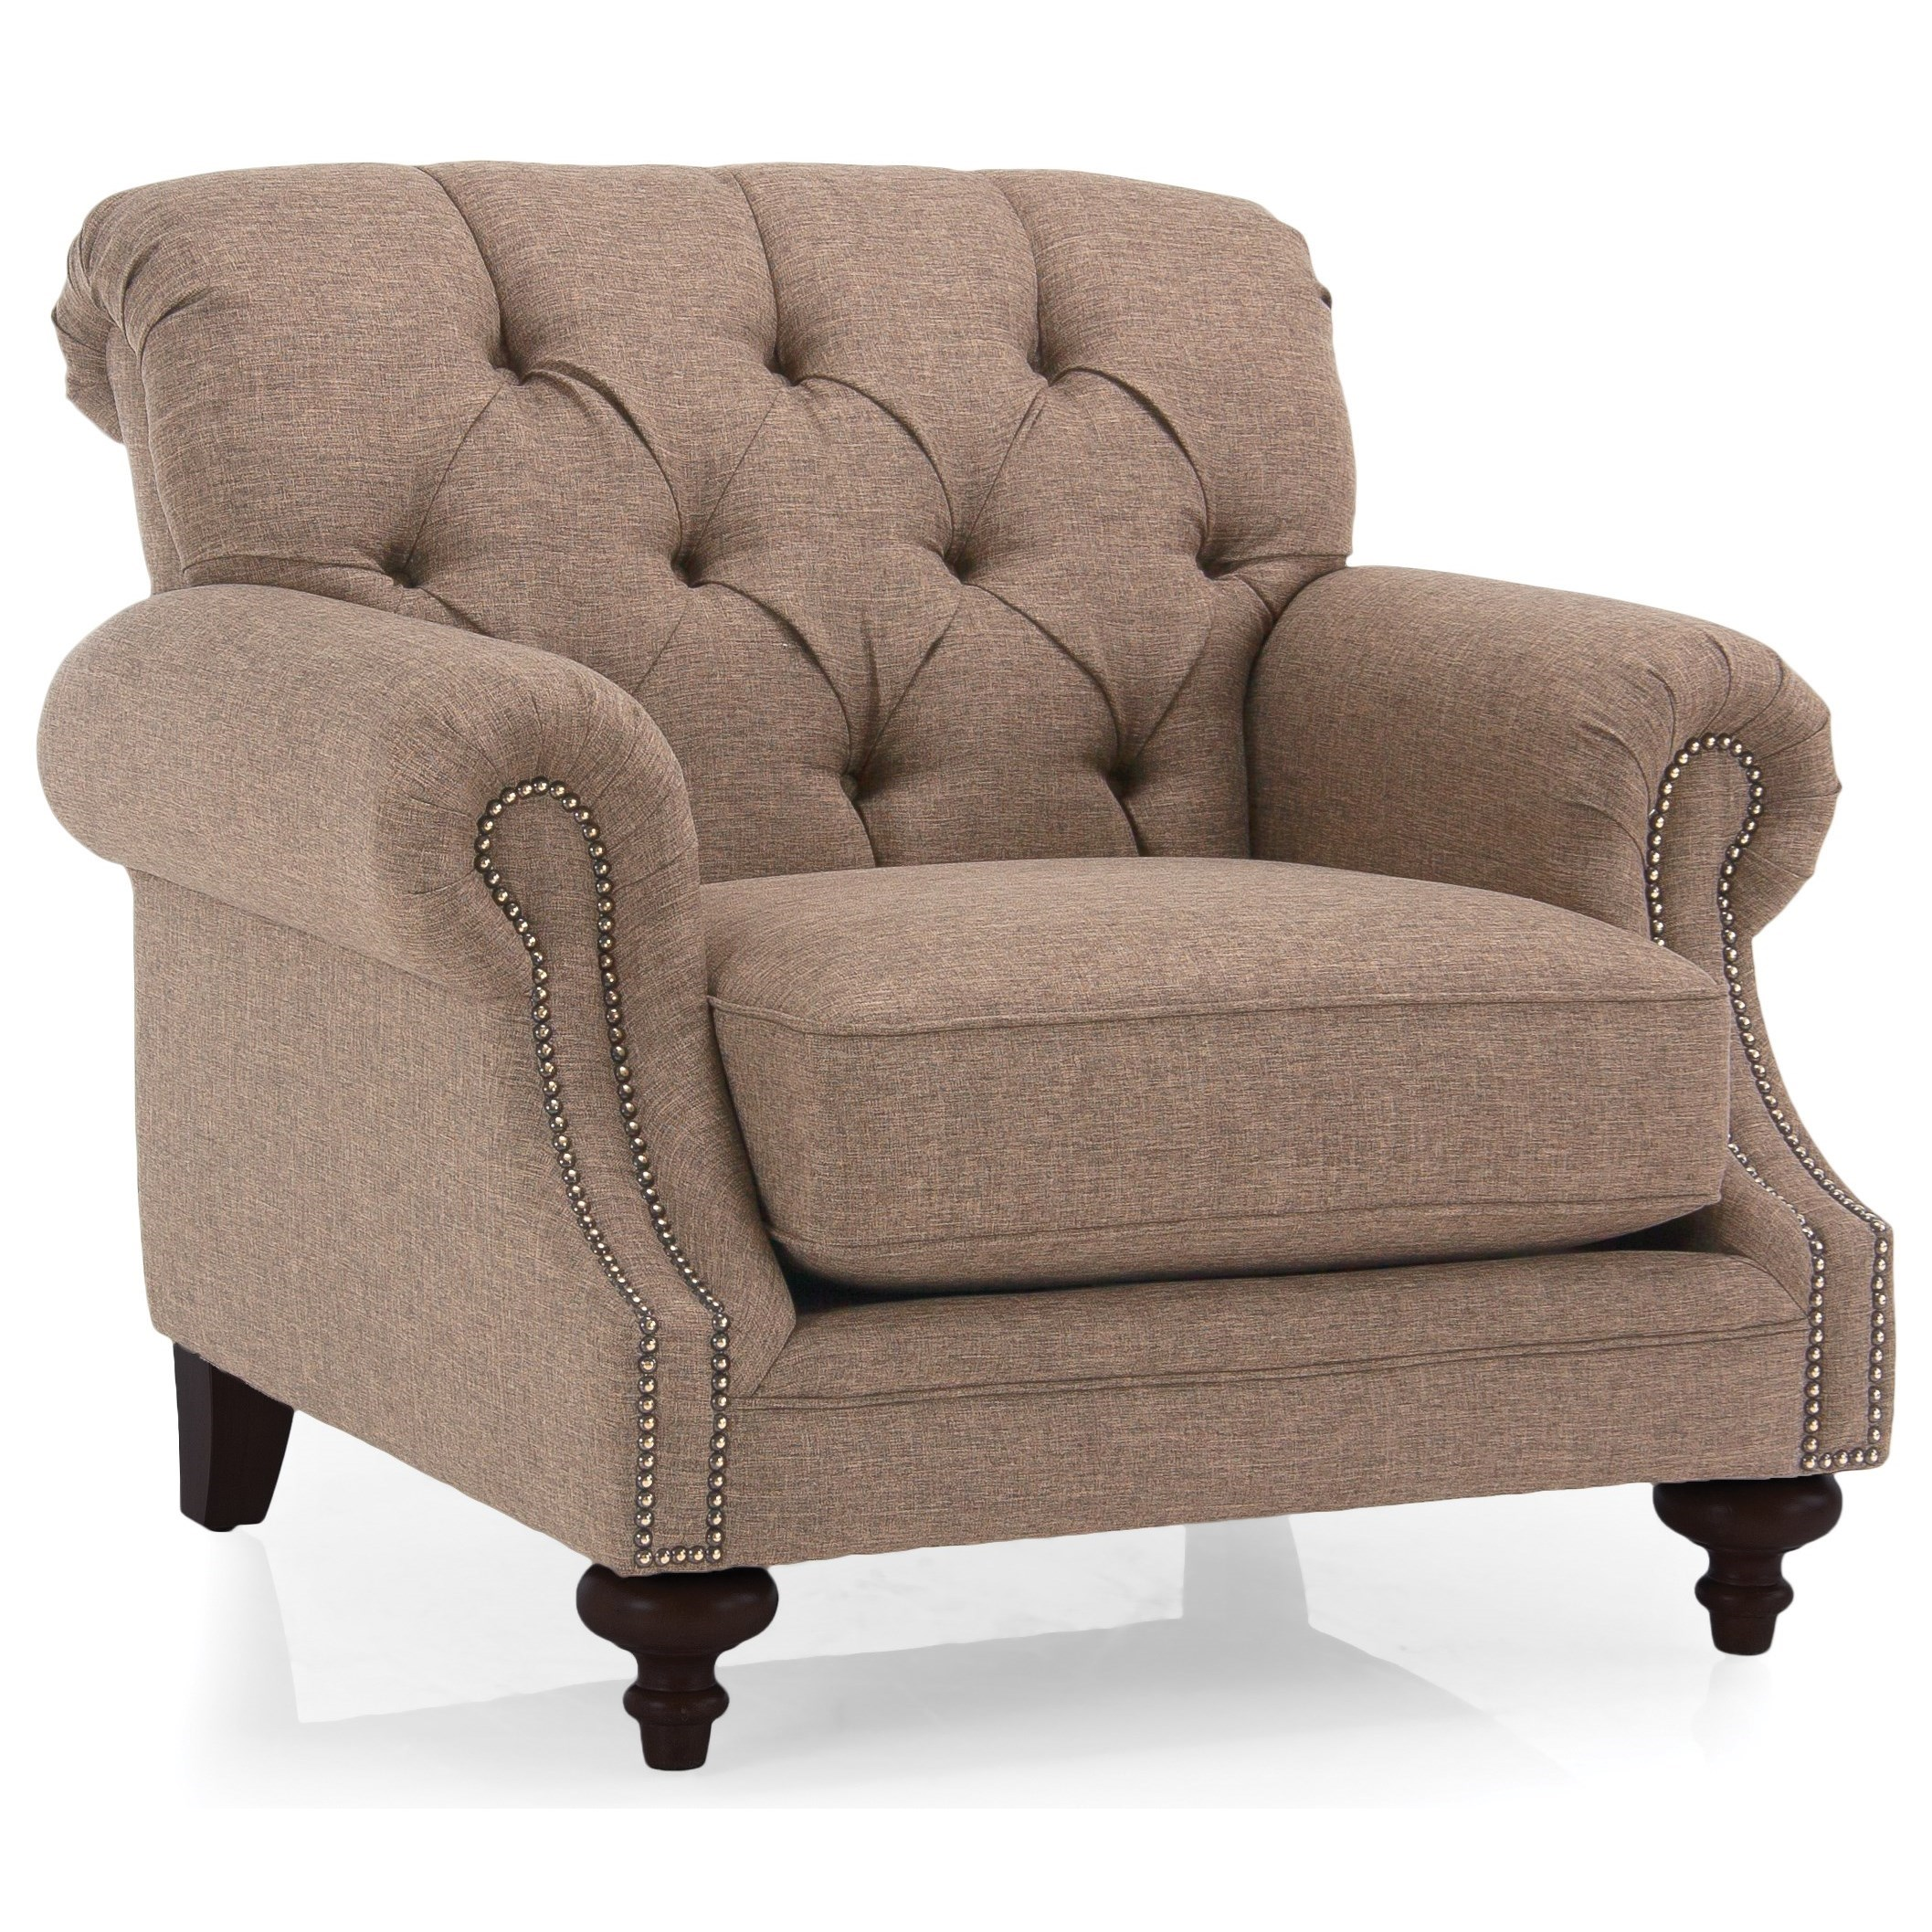 2133 Chair by Decor-Rest at Stoney Creek Furniture